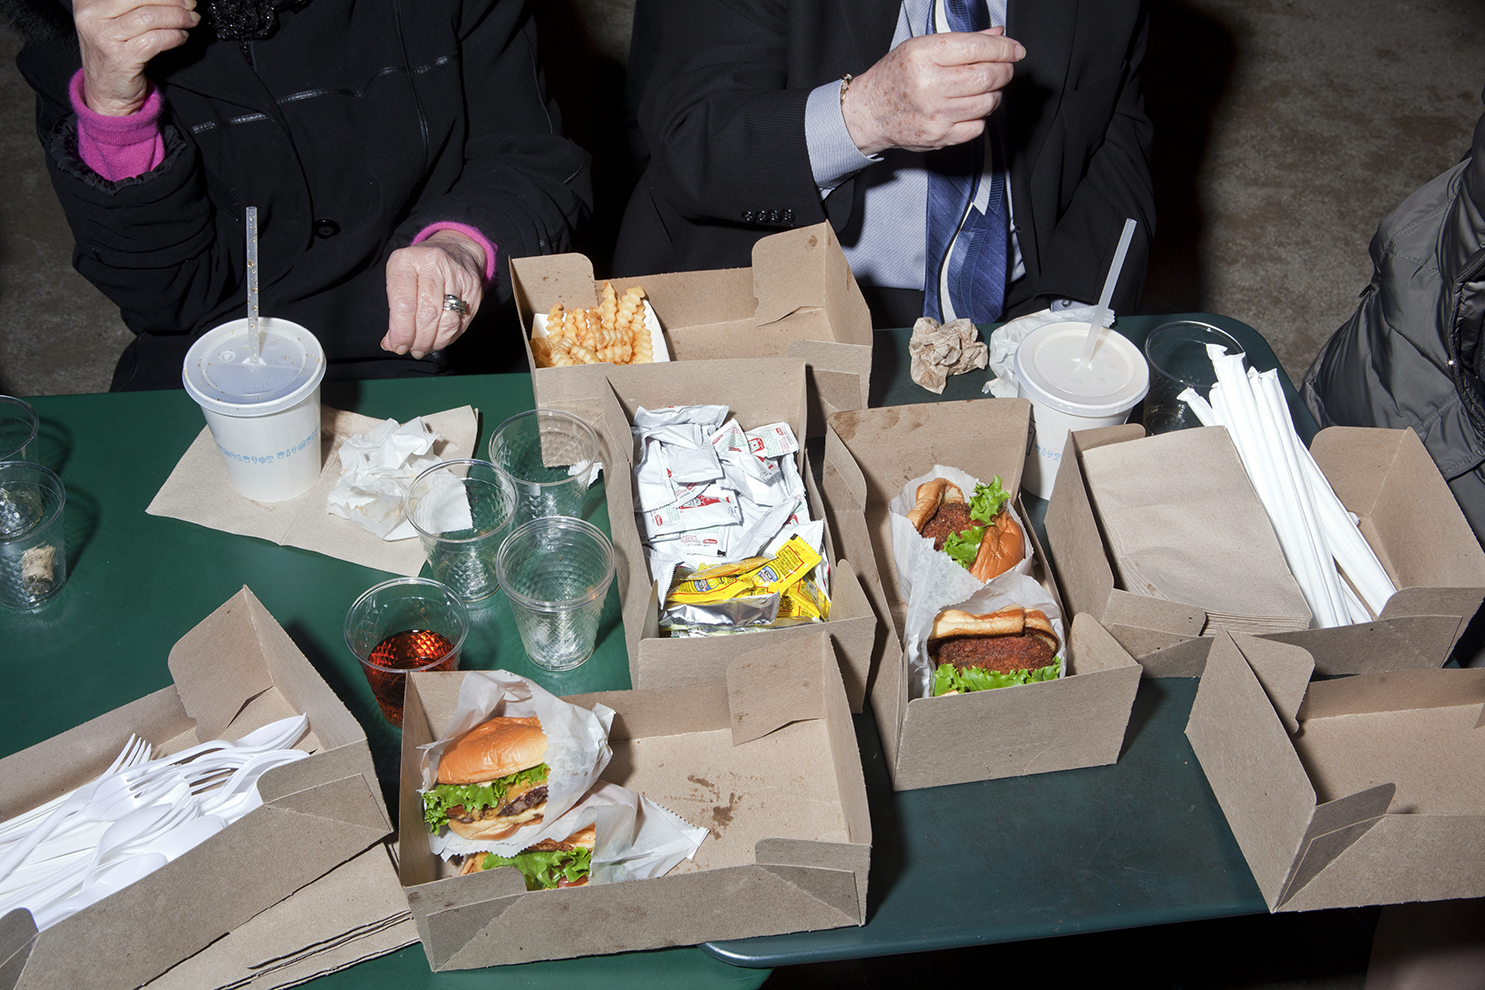 eat and drink at Shake Shack on 12/12/12